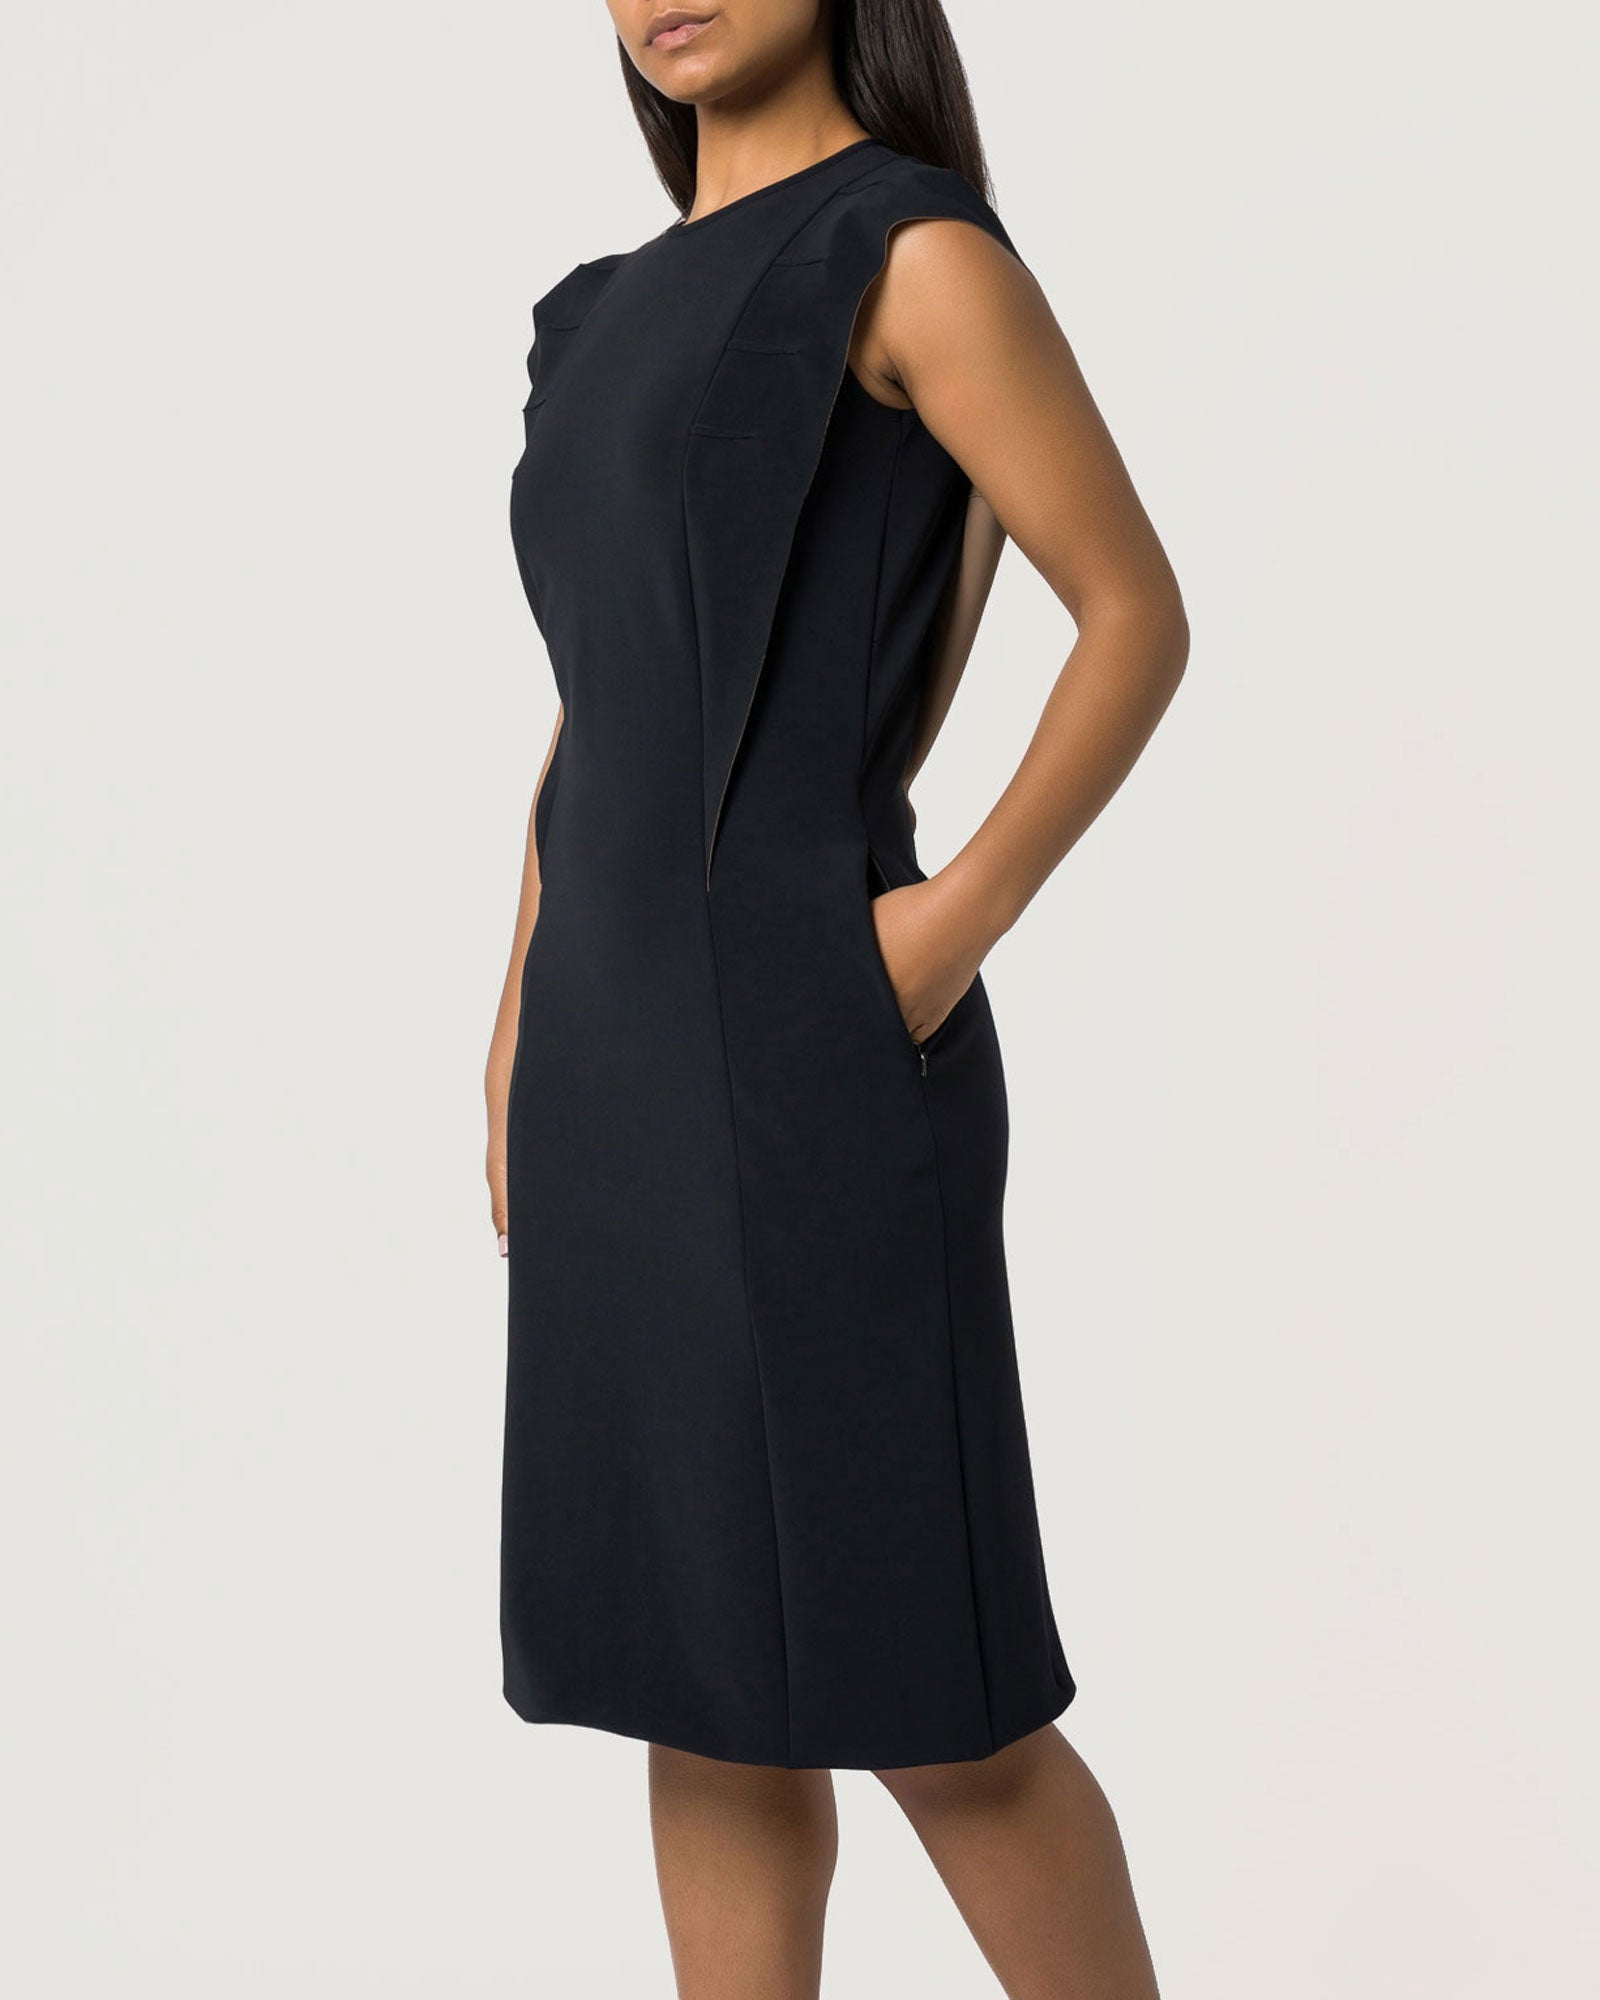 Thinking Cap Dress